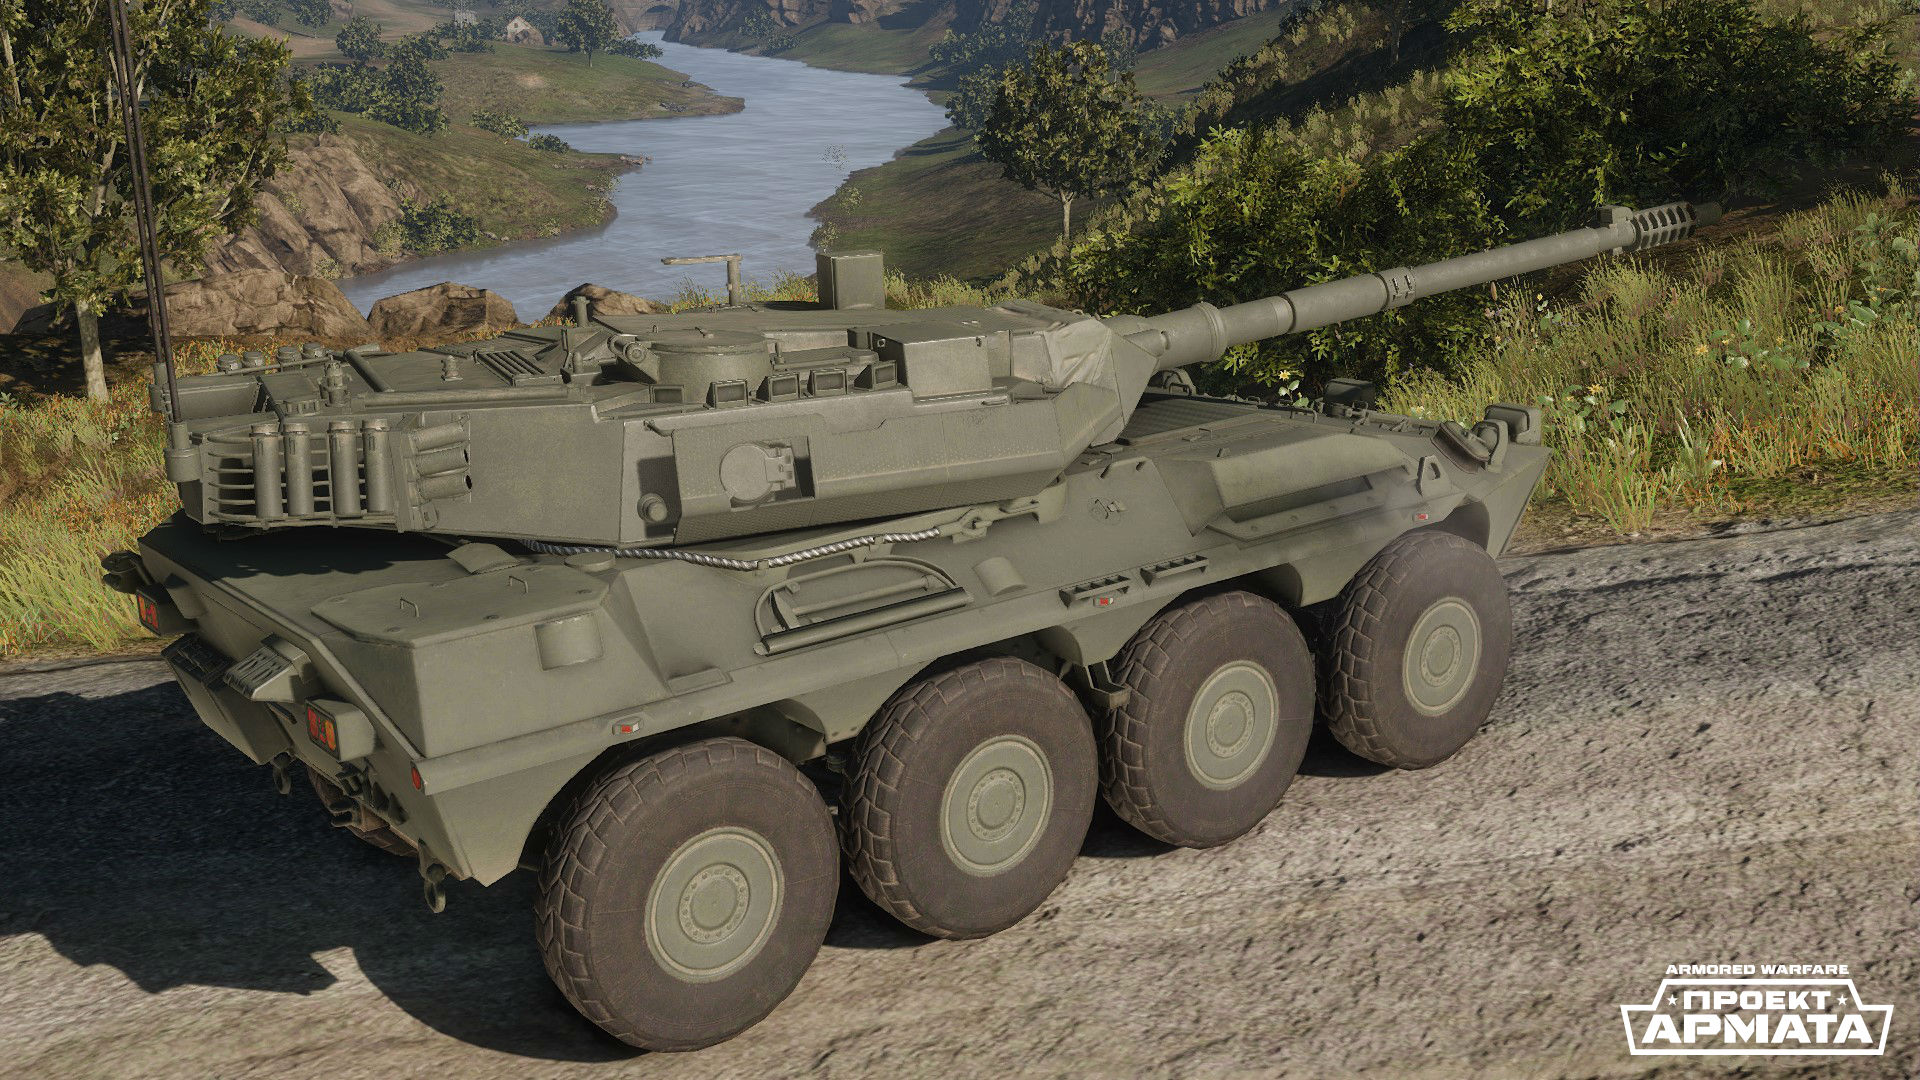 istrebiteli-tankov-armored-warfare-1